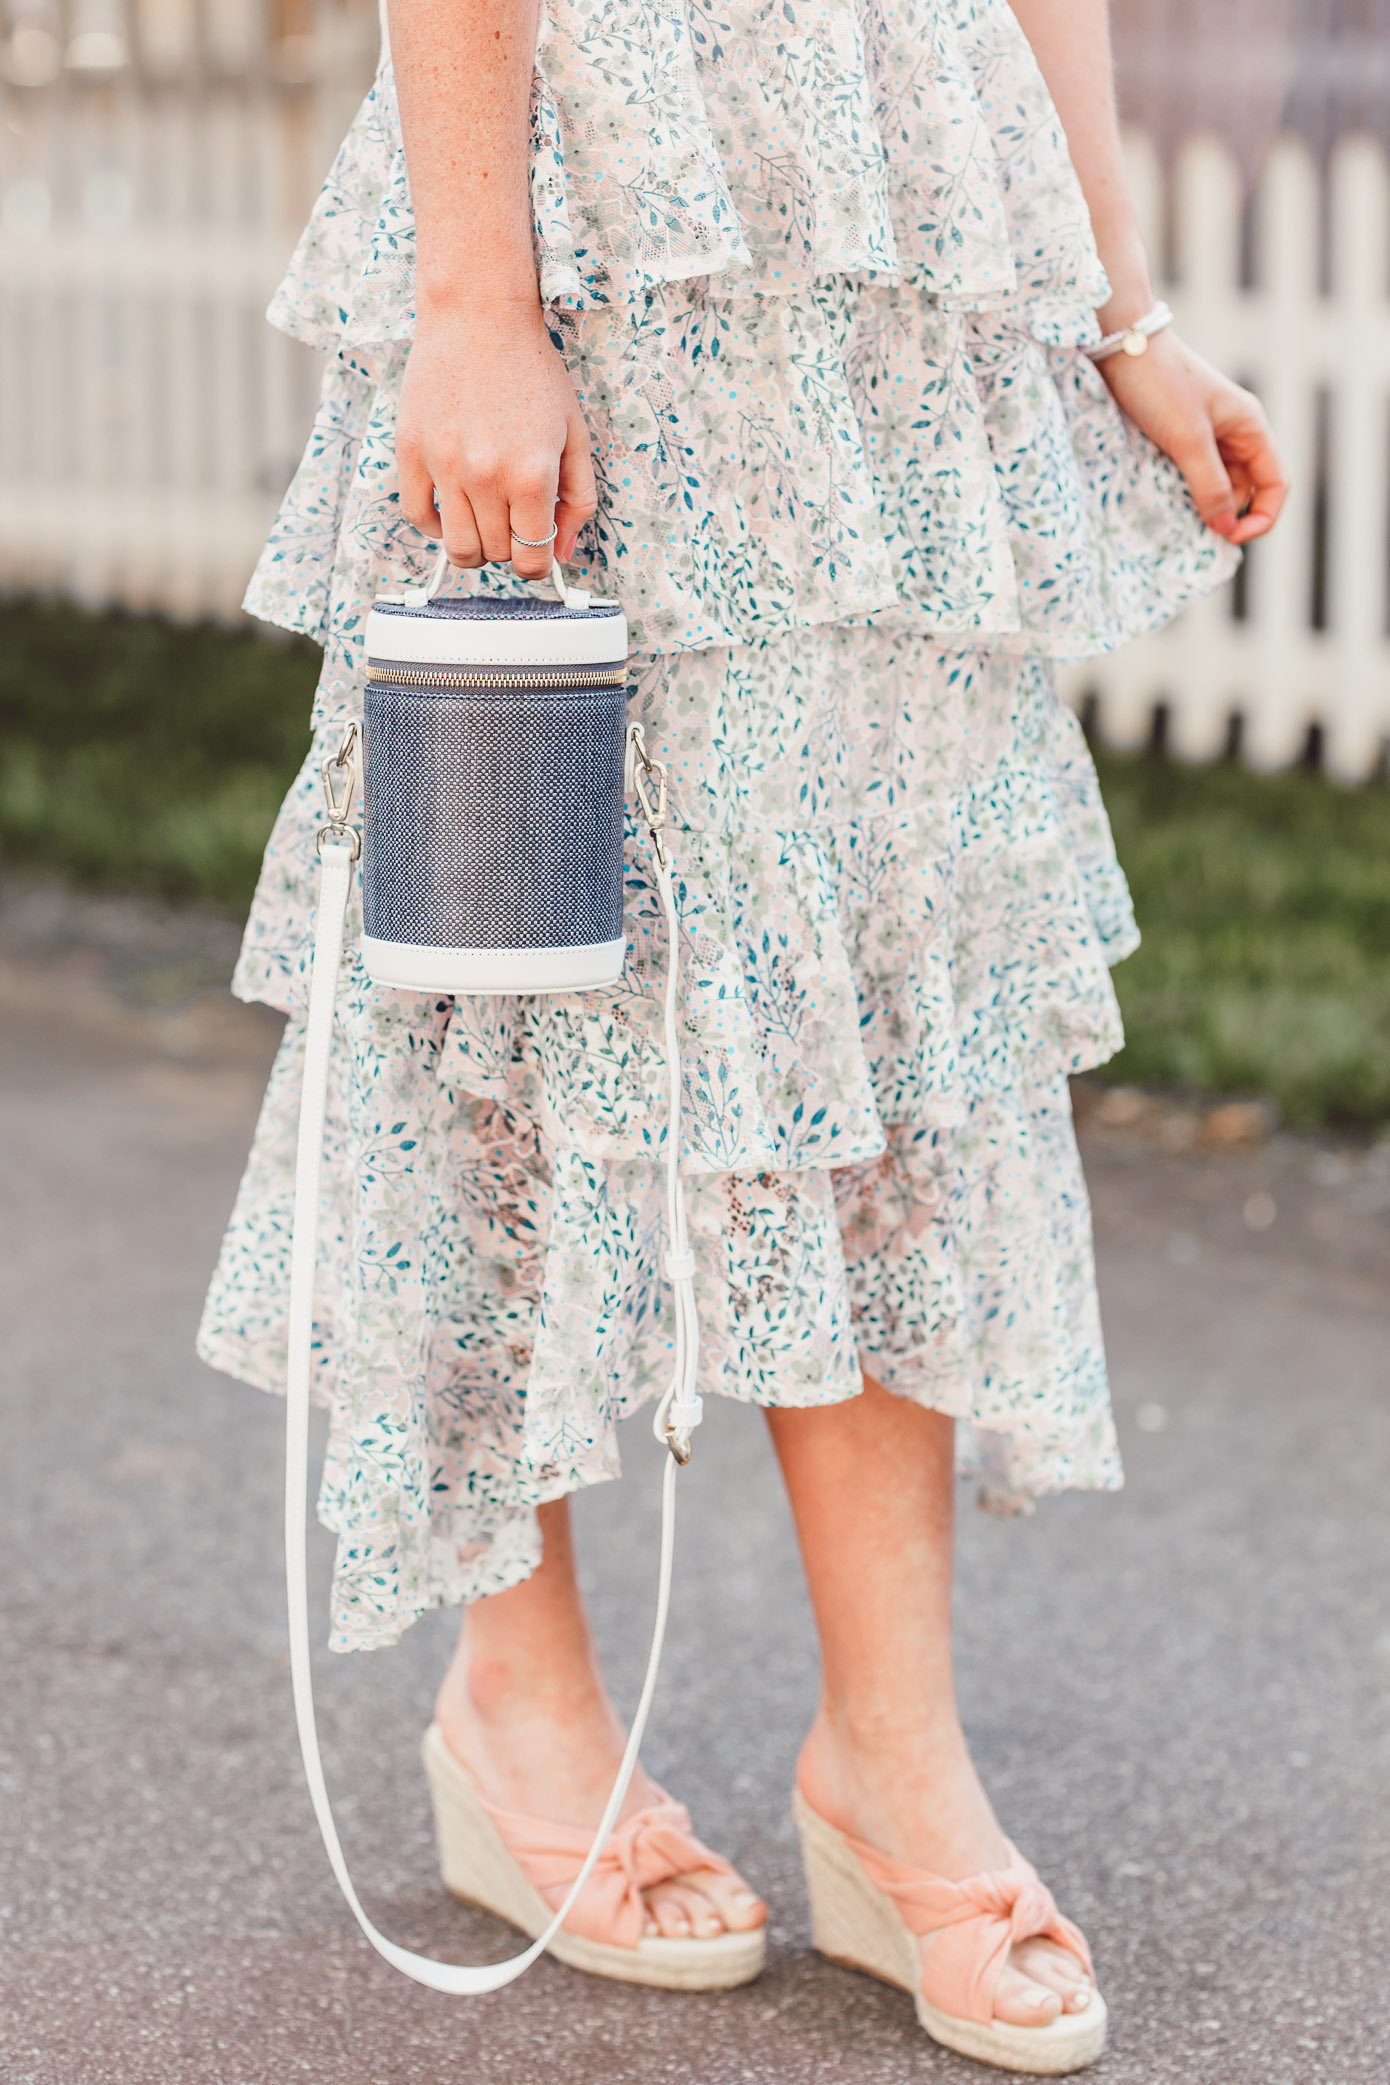 Floral Ruffle Midi Skirt, Rosé graphic tee | ft. Chicwish, Soludos, Paravel | Louella Reese #summerstyle #midiskirt #femininestyle #chicwish #soludos